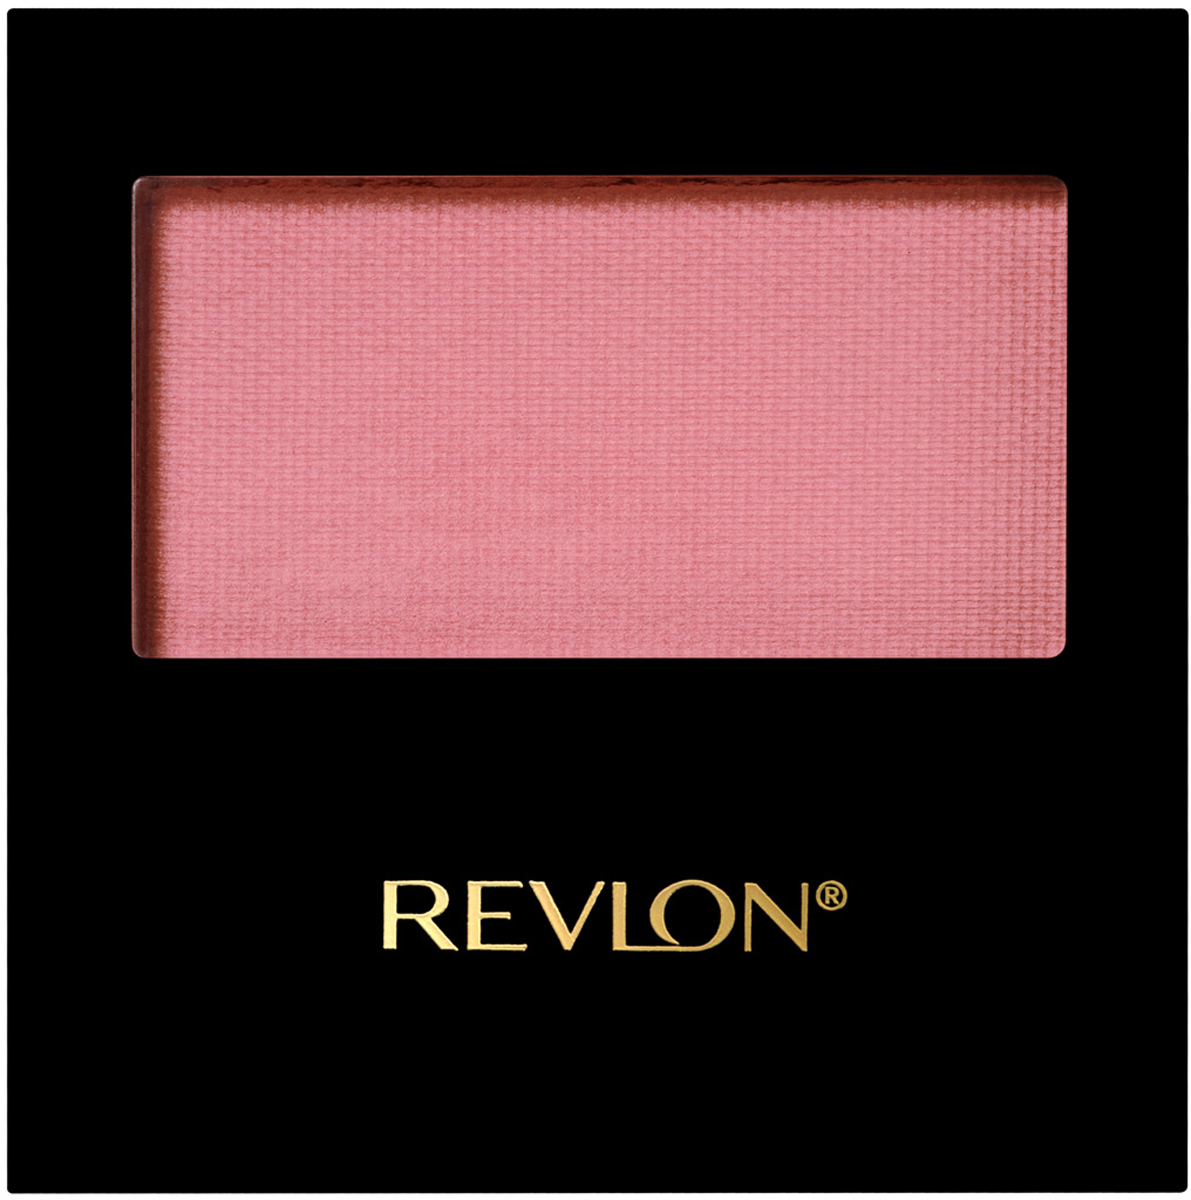 Revlon Румяна для лица Powder Blush Orchid charm, тон №018